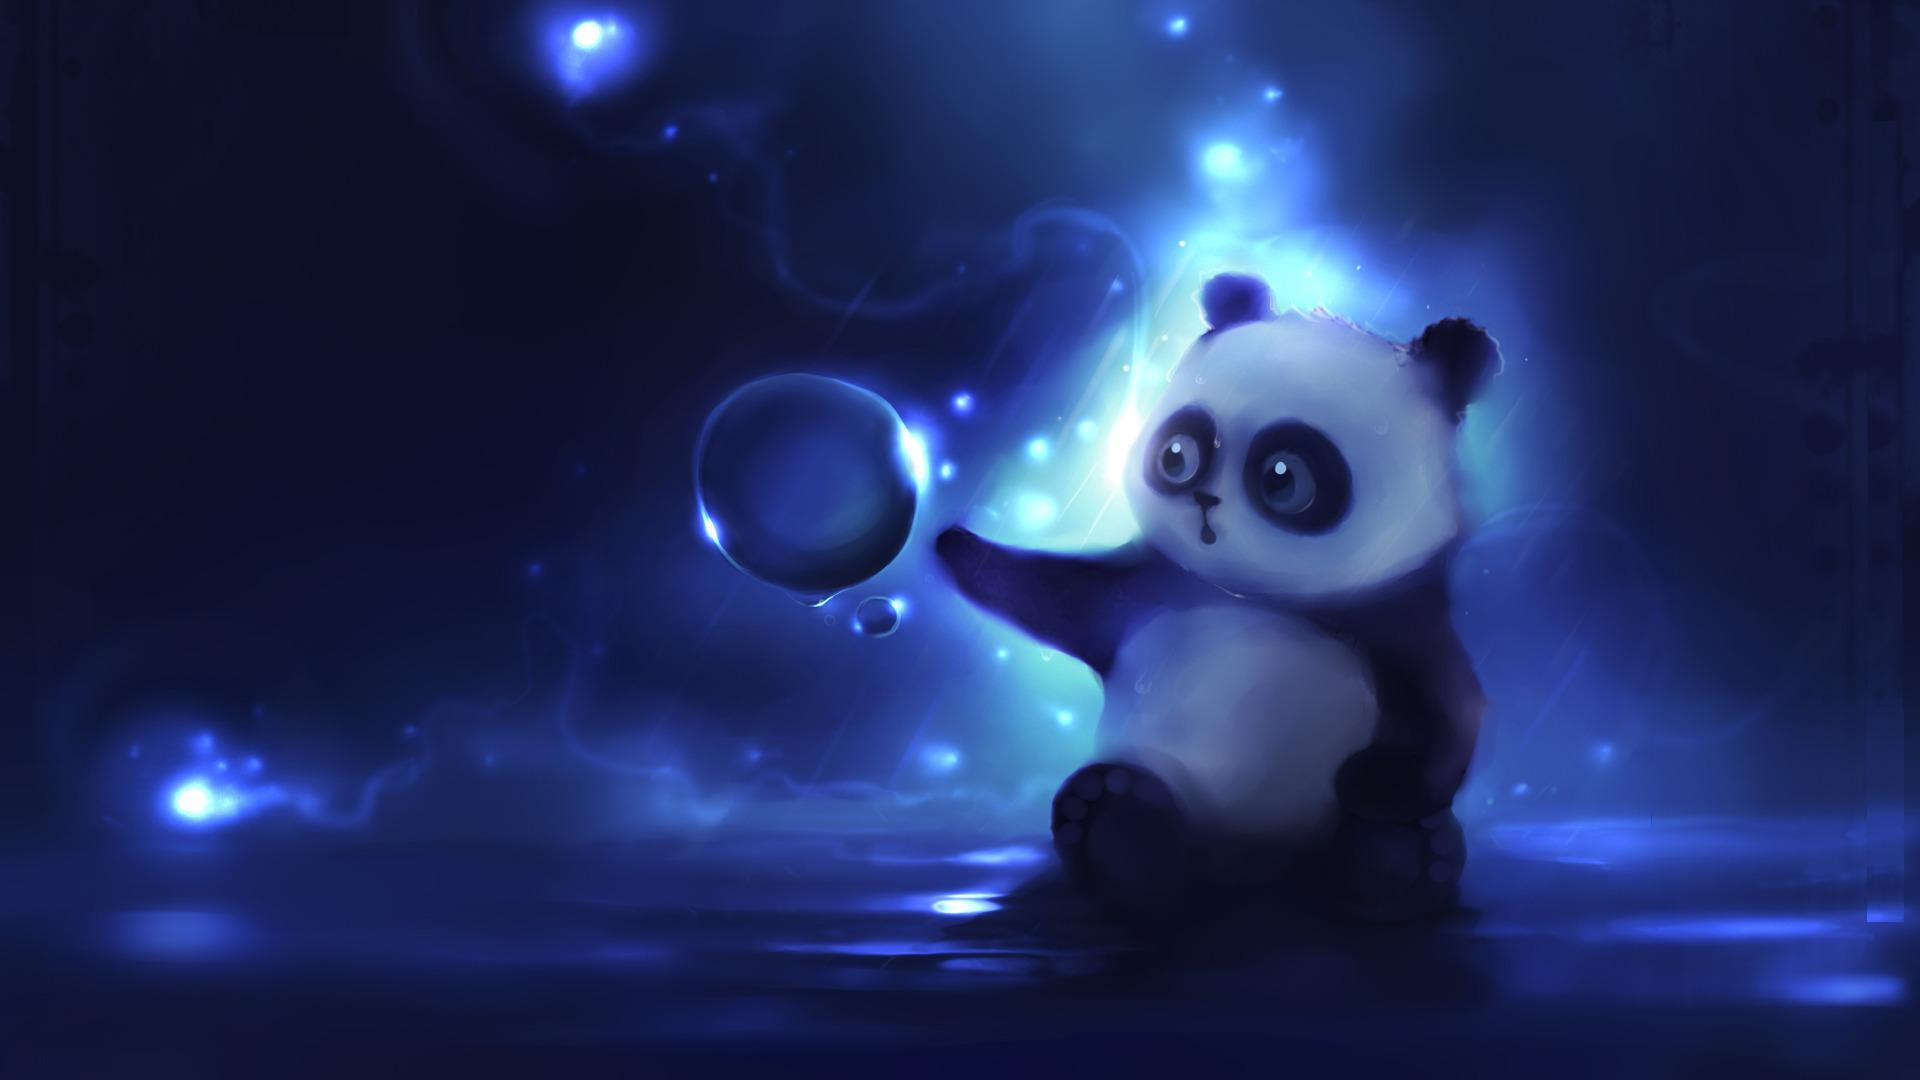 wallpapers cute animated cartoon characters wallpapers download 1920x1080